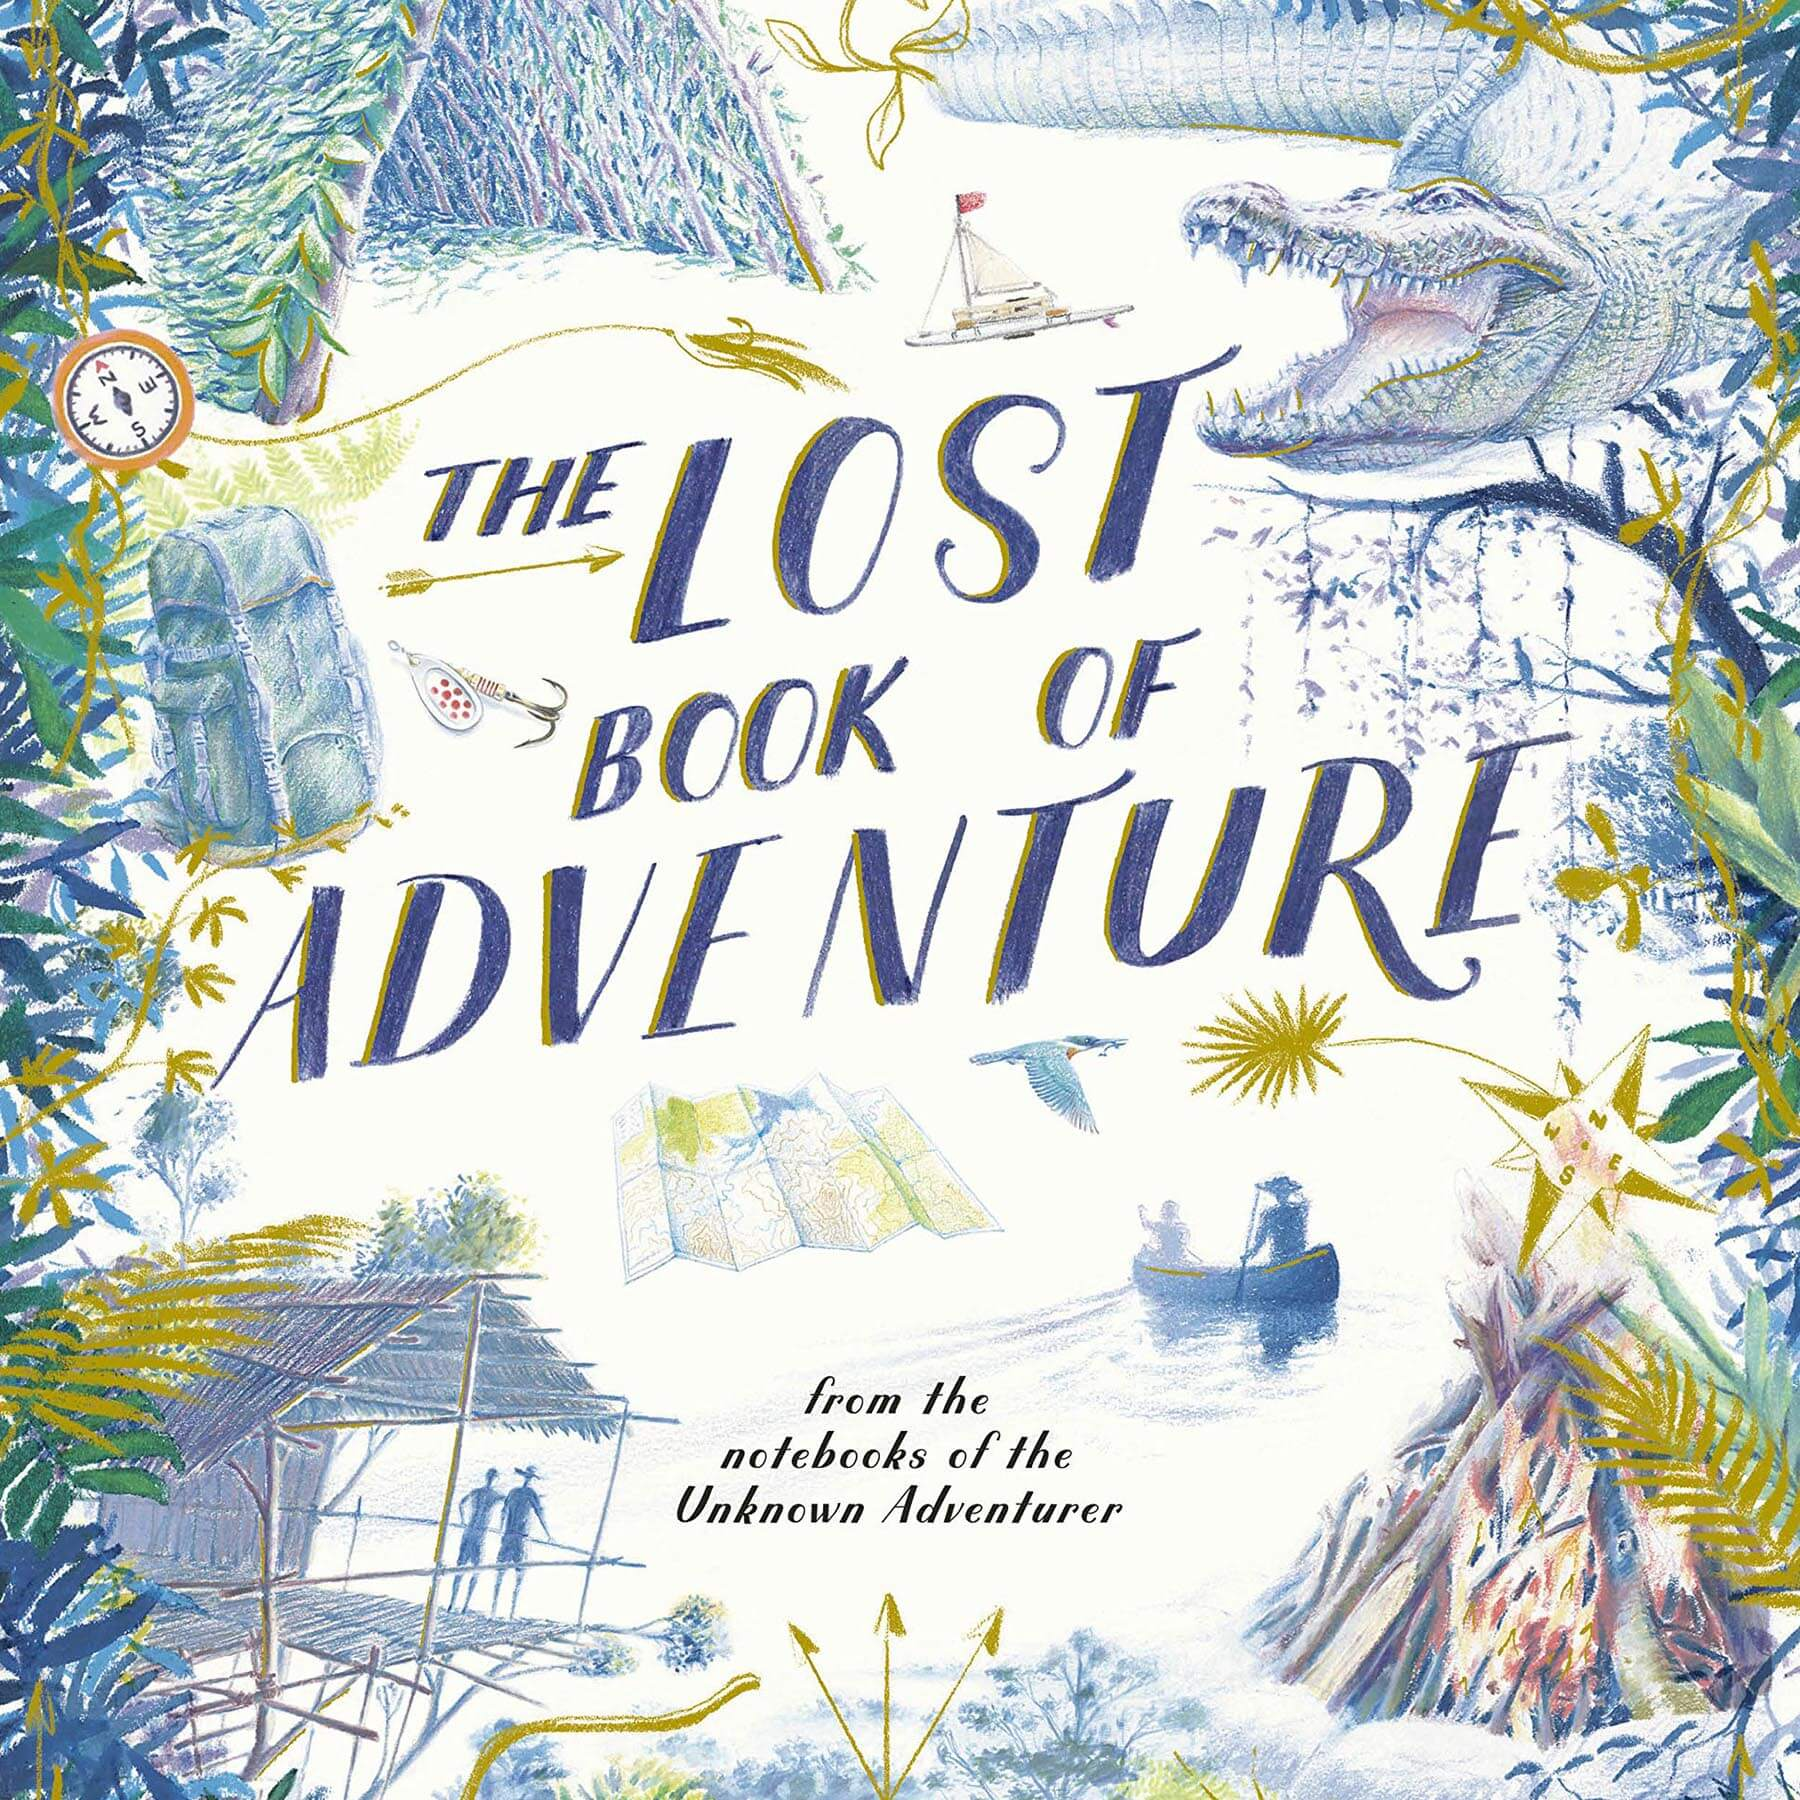 The Lost Book of Adventures